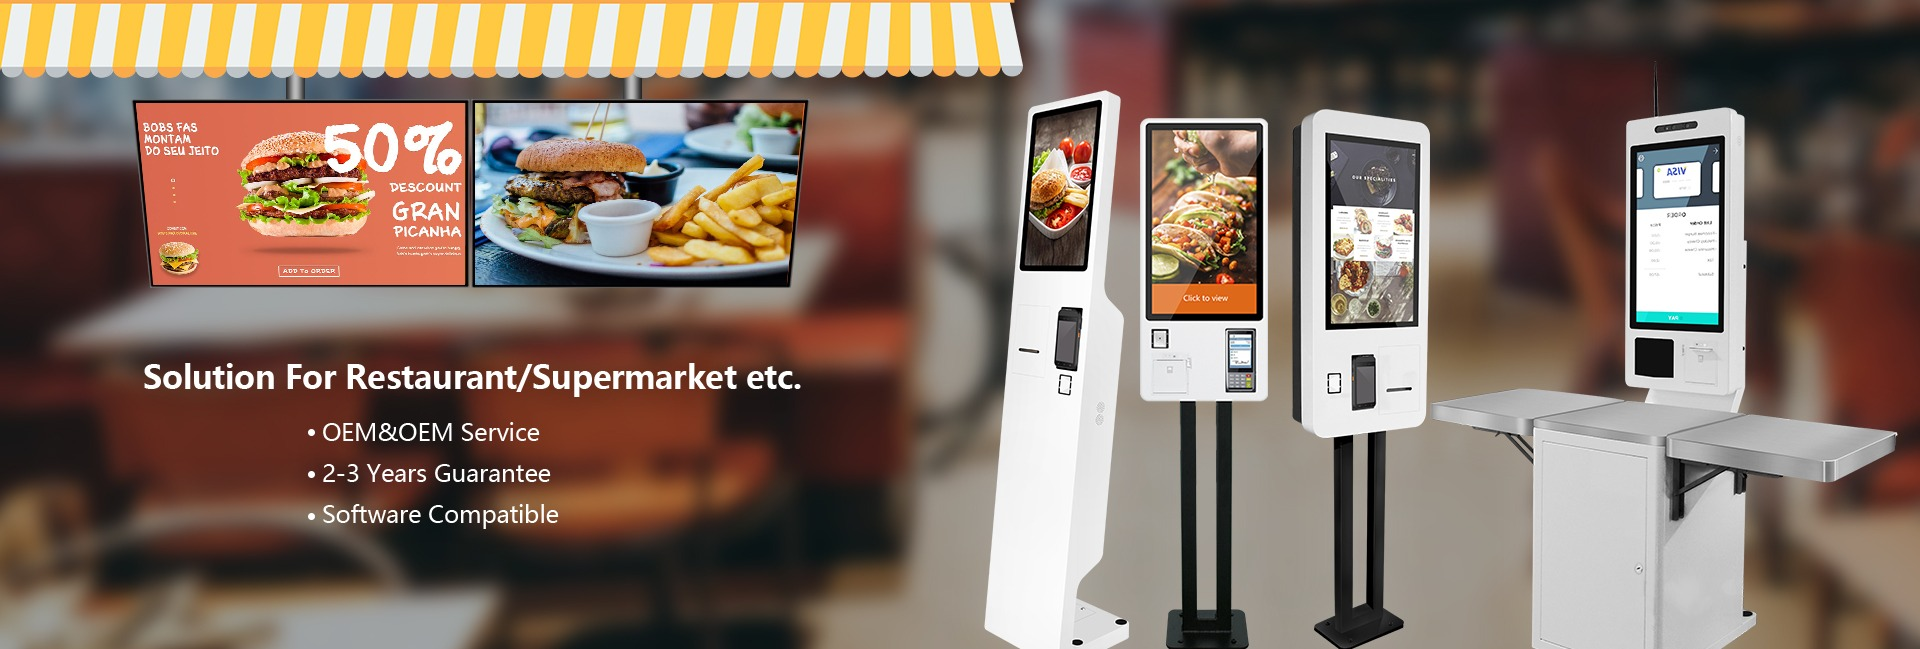 free epos Digital Screens and self order kiosk